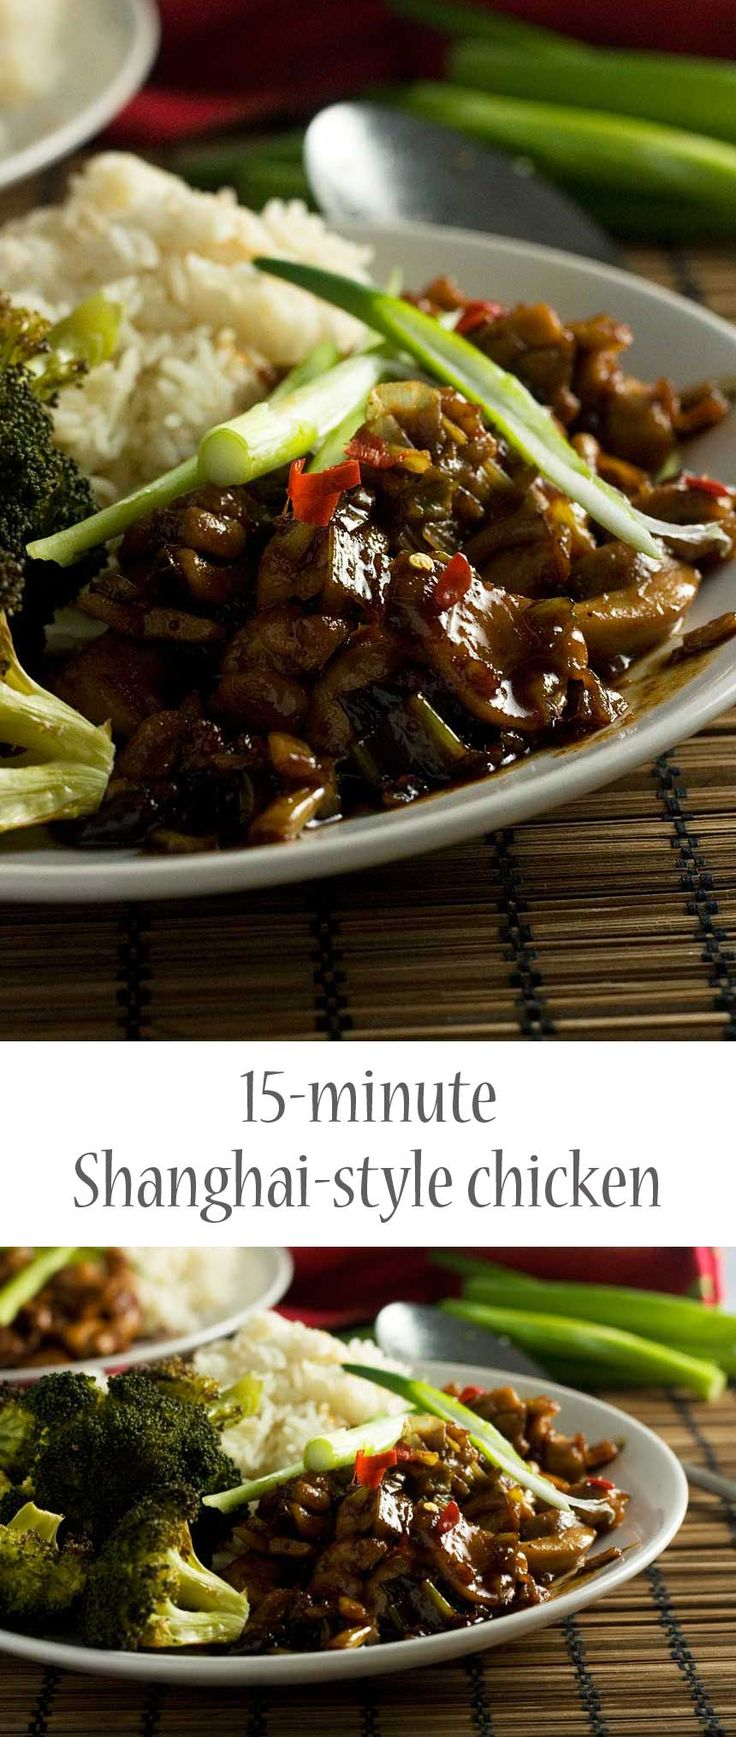 15-minute Shanghai chicken